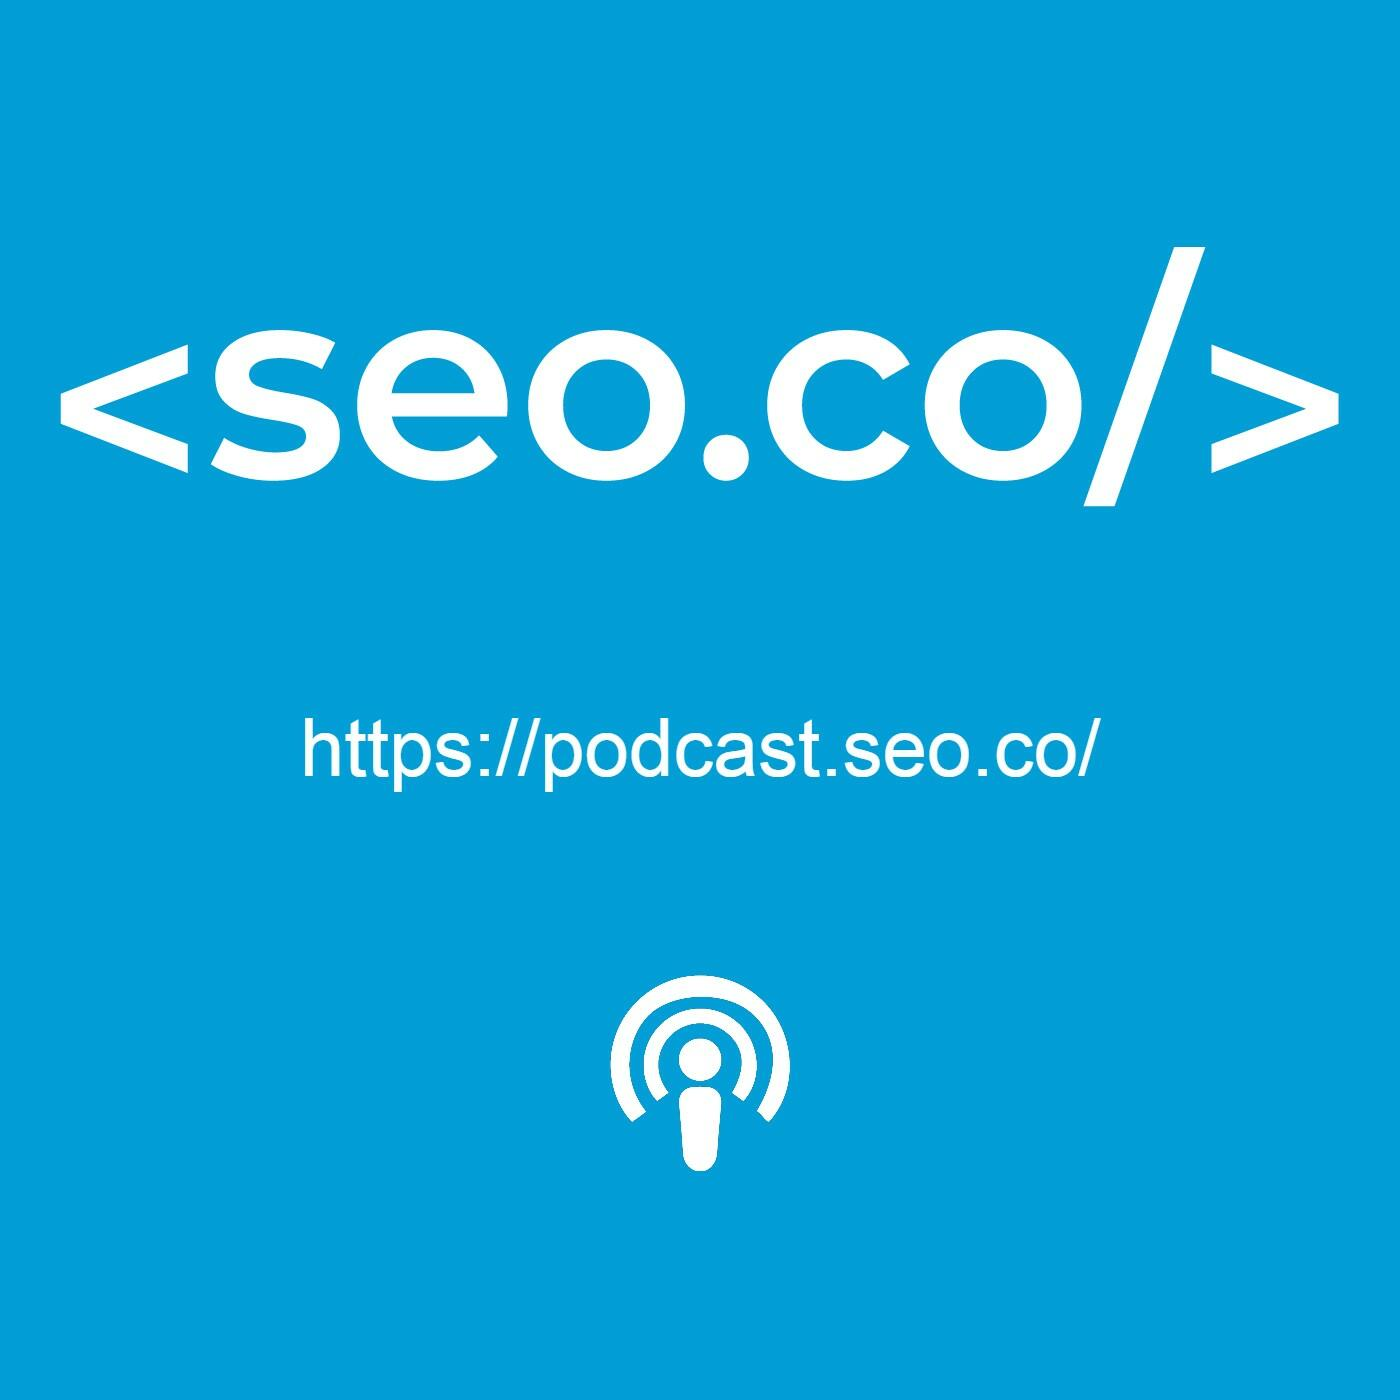 Listen to the SEO Podcast | SEO.co Search Engine Optimization Podcast Episode - How to Build a Content-rich Homepage on iHeartRadio | iHeartRadio